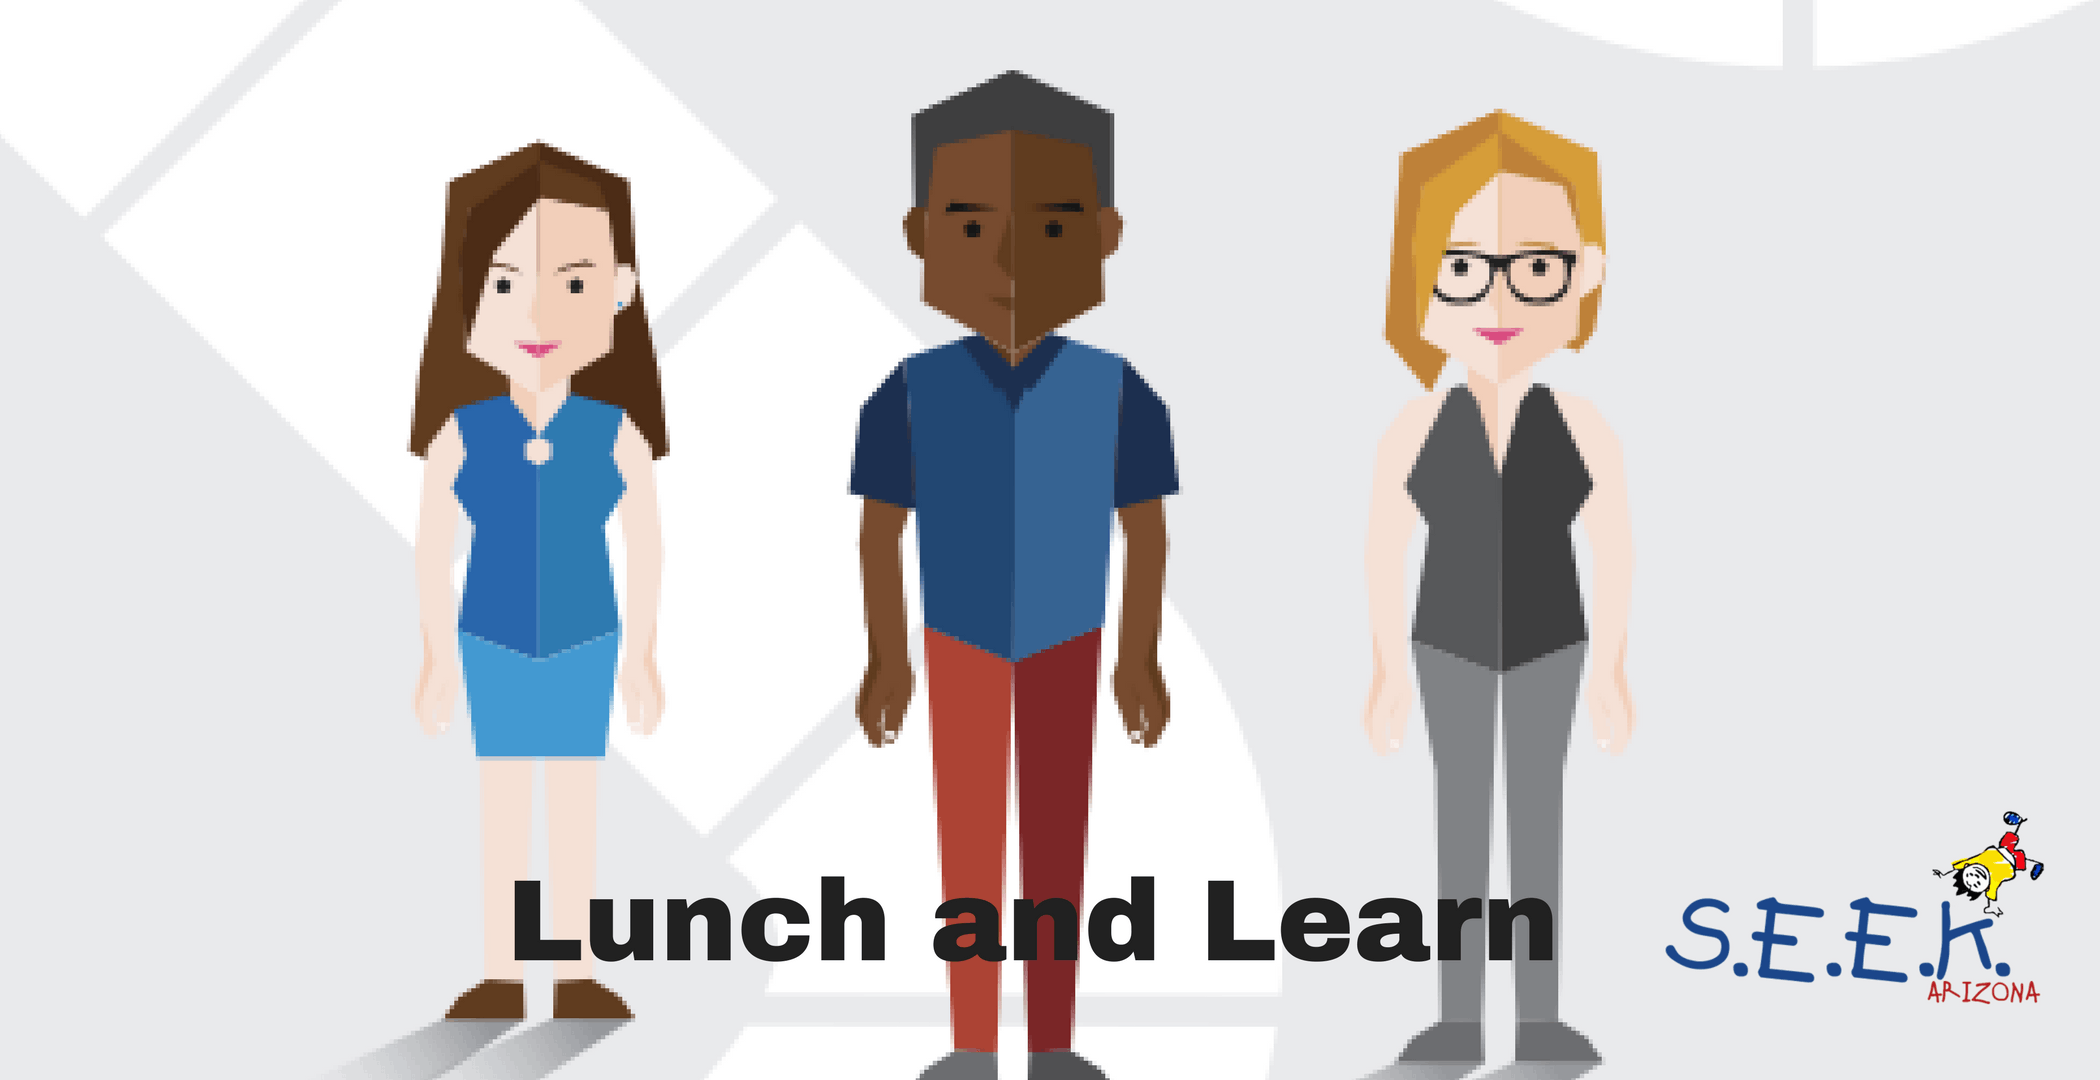 S.E.E.K. Arizona Lunch and Learn Series